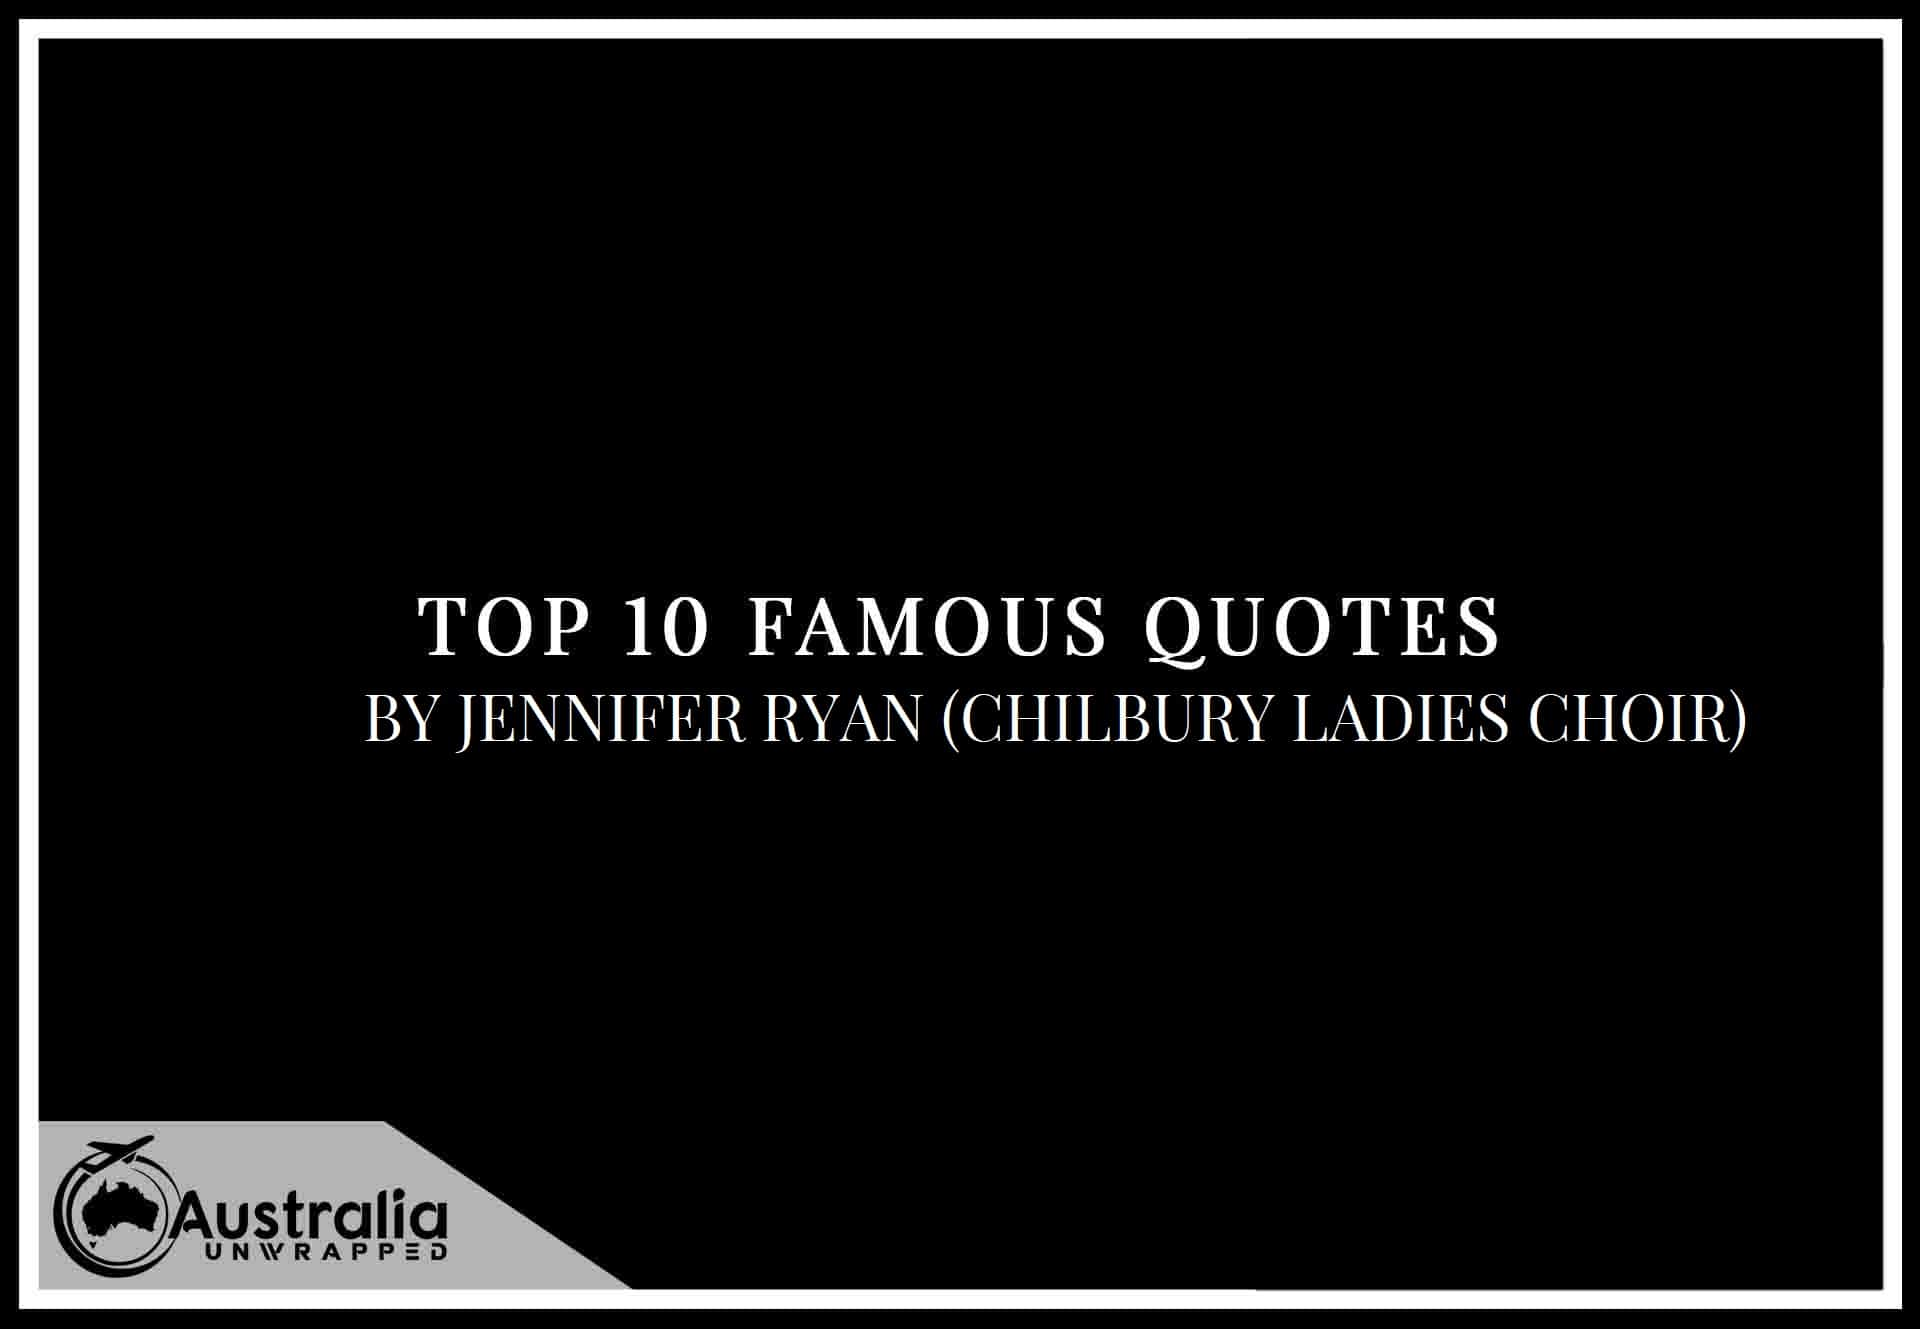 Top 10 Famous Quotes by Author Jennifer Ryan